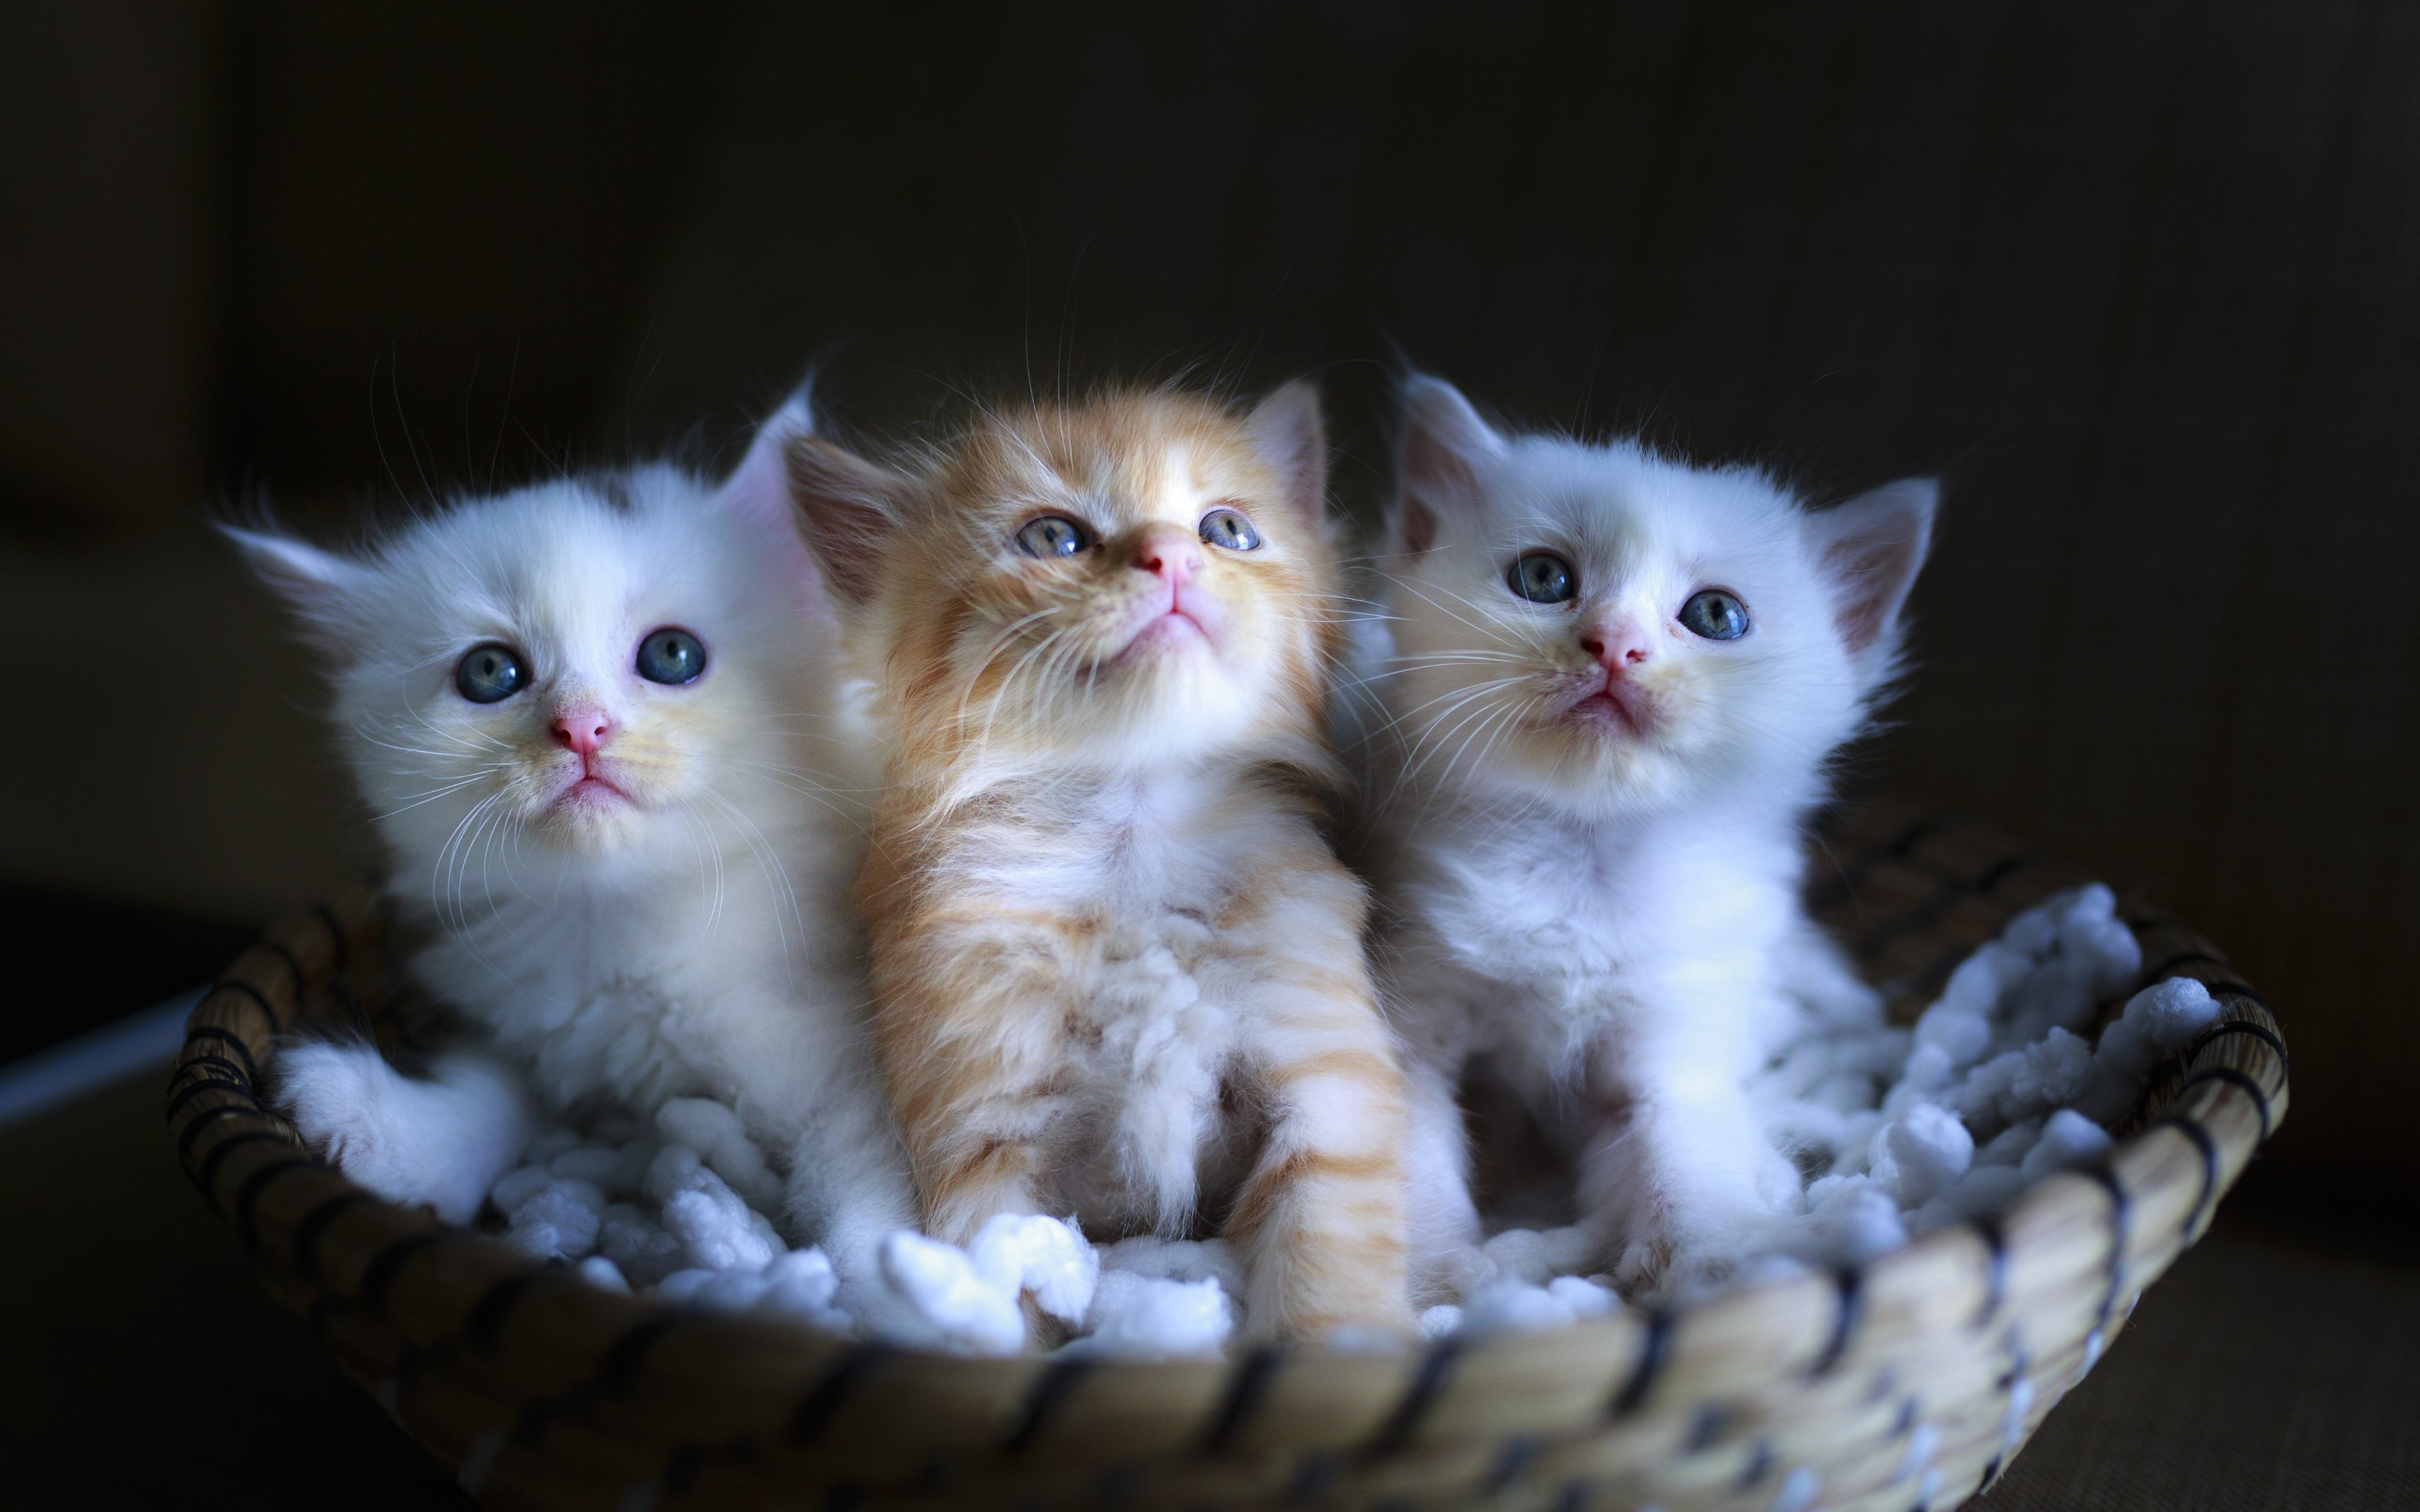 Three cute kittens wallpaper 3840x2400